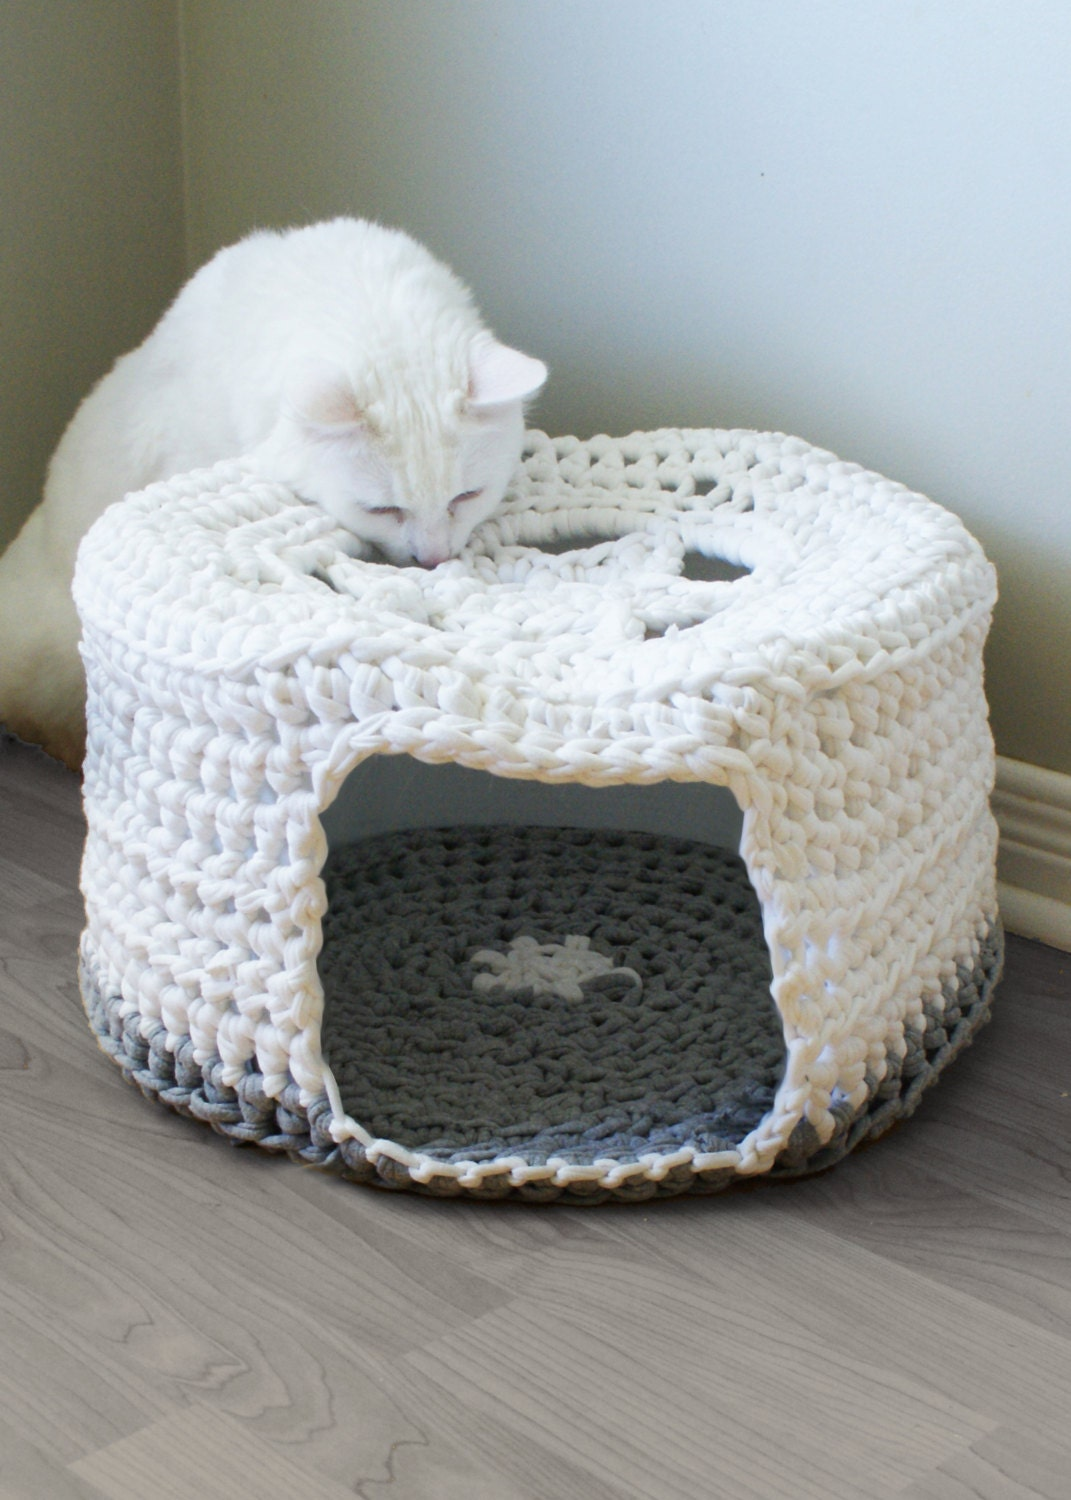 Crochet Patterns Chunky Yarn : DIY Crochet PATTERN Chunky T-shirt Yarn Pet Cave / Cat Bed